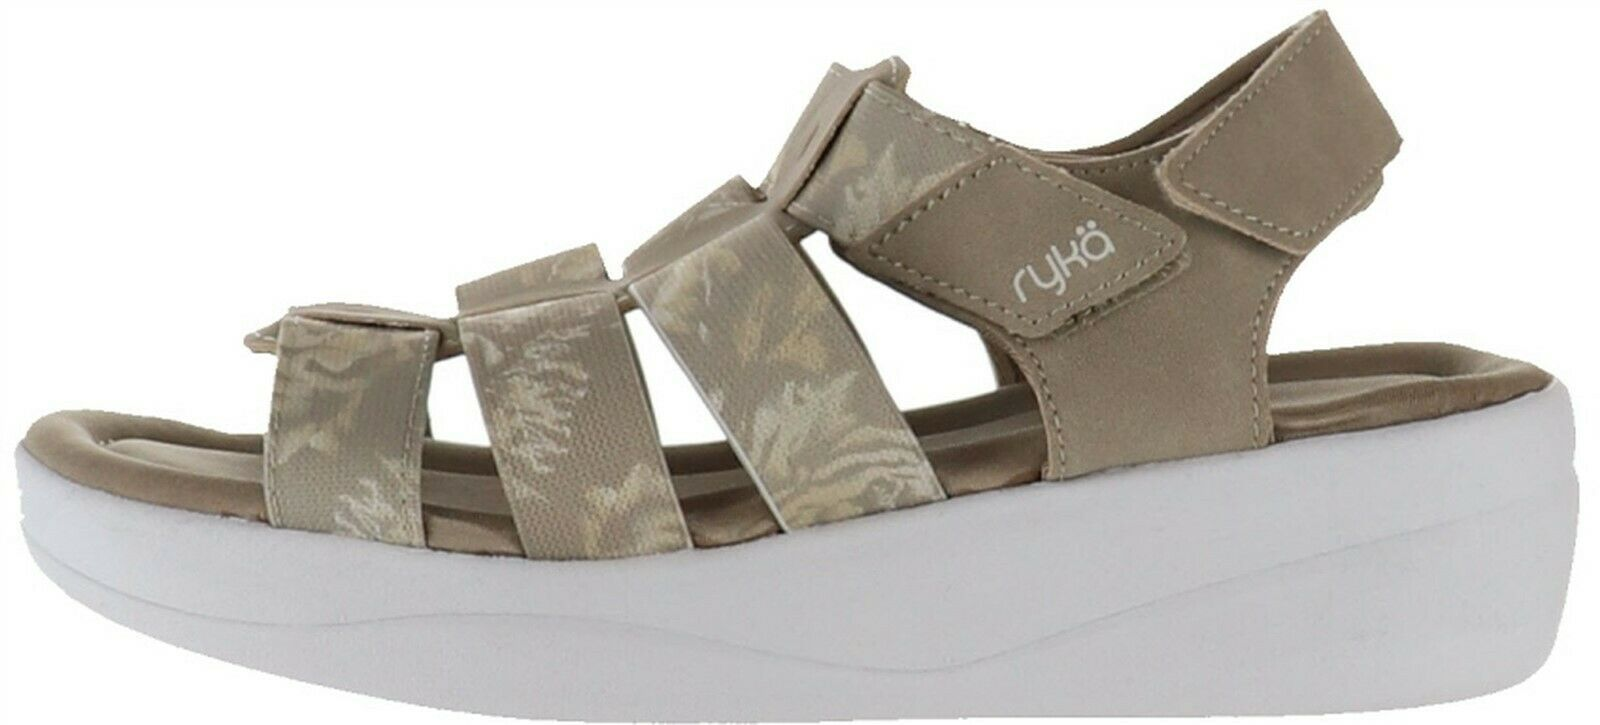 Primary image for Ryka Multi-Strap Adjustable Wedge Sandals Aloha Taupe 9M NEW A351783